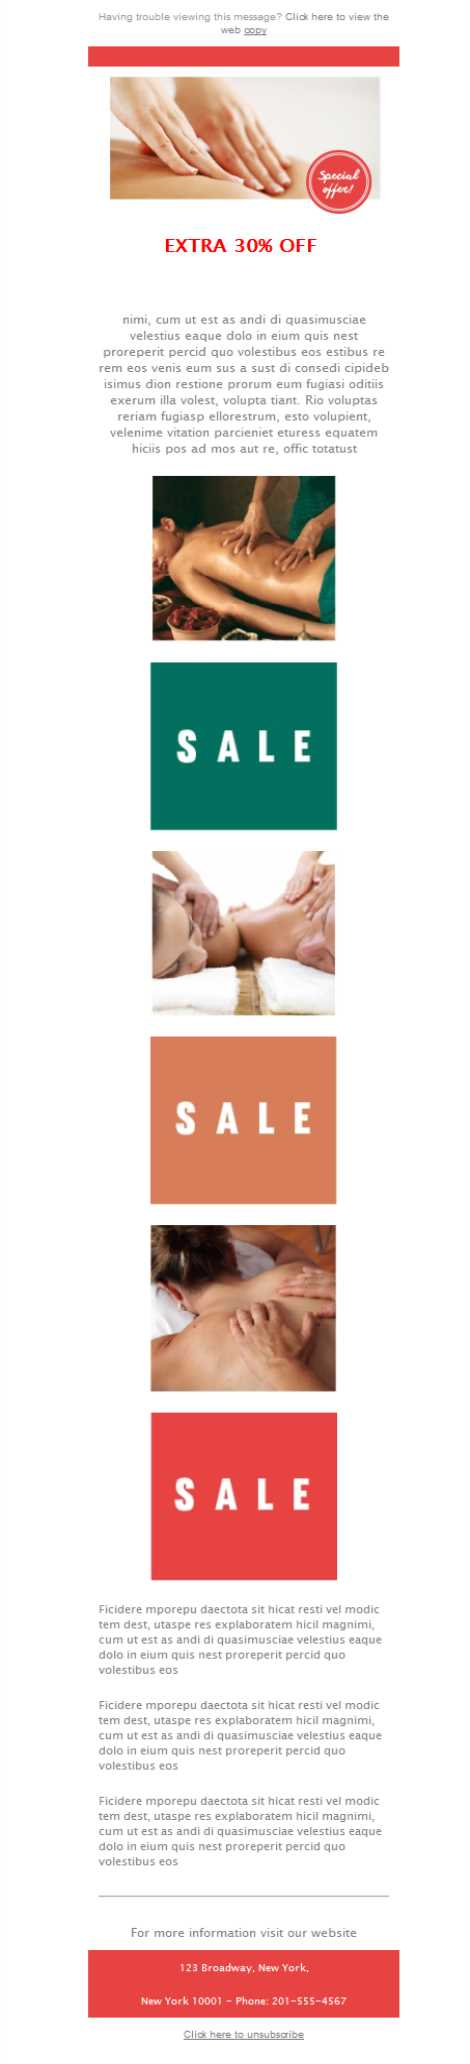 Templates Emailing Massage Sale Sarbacane